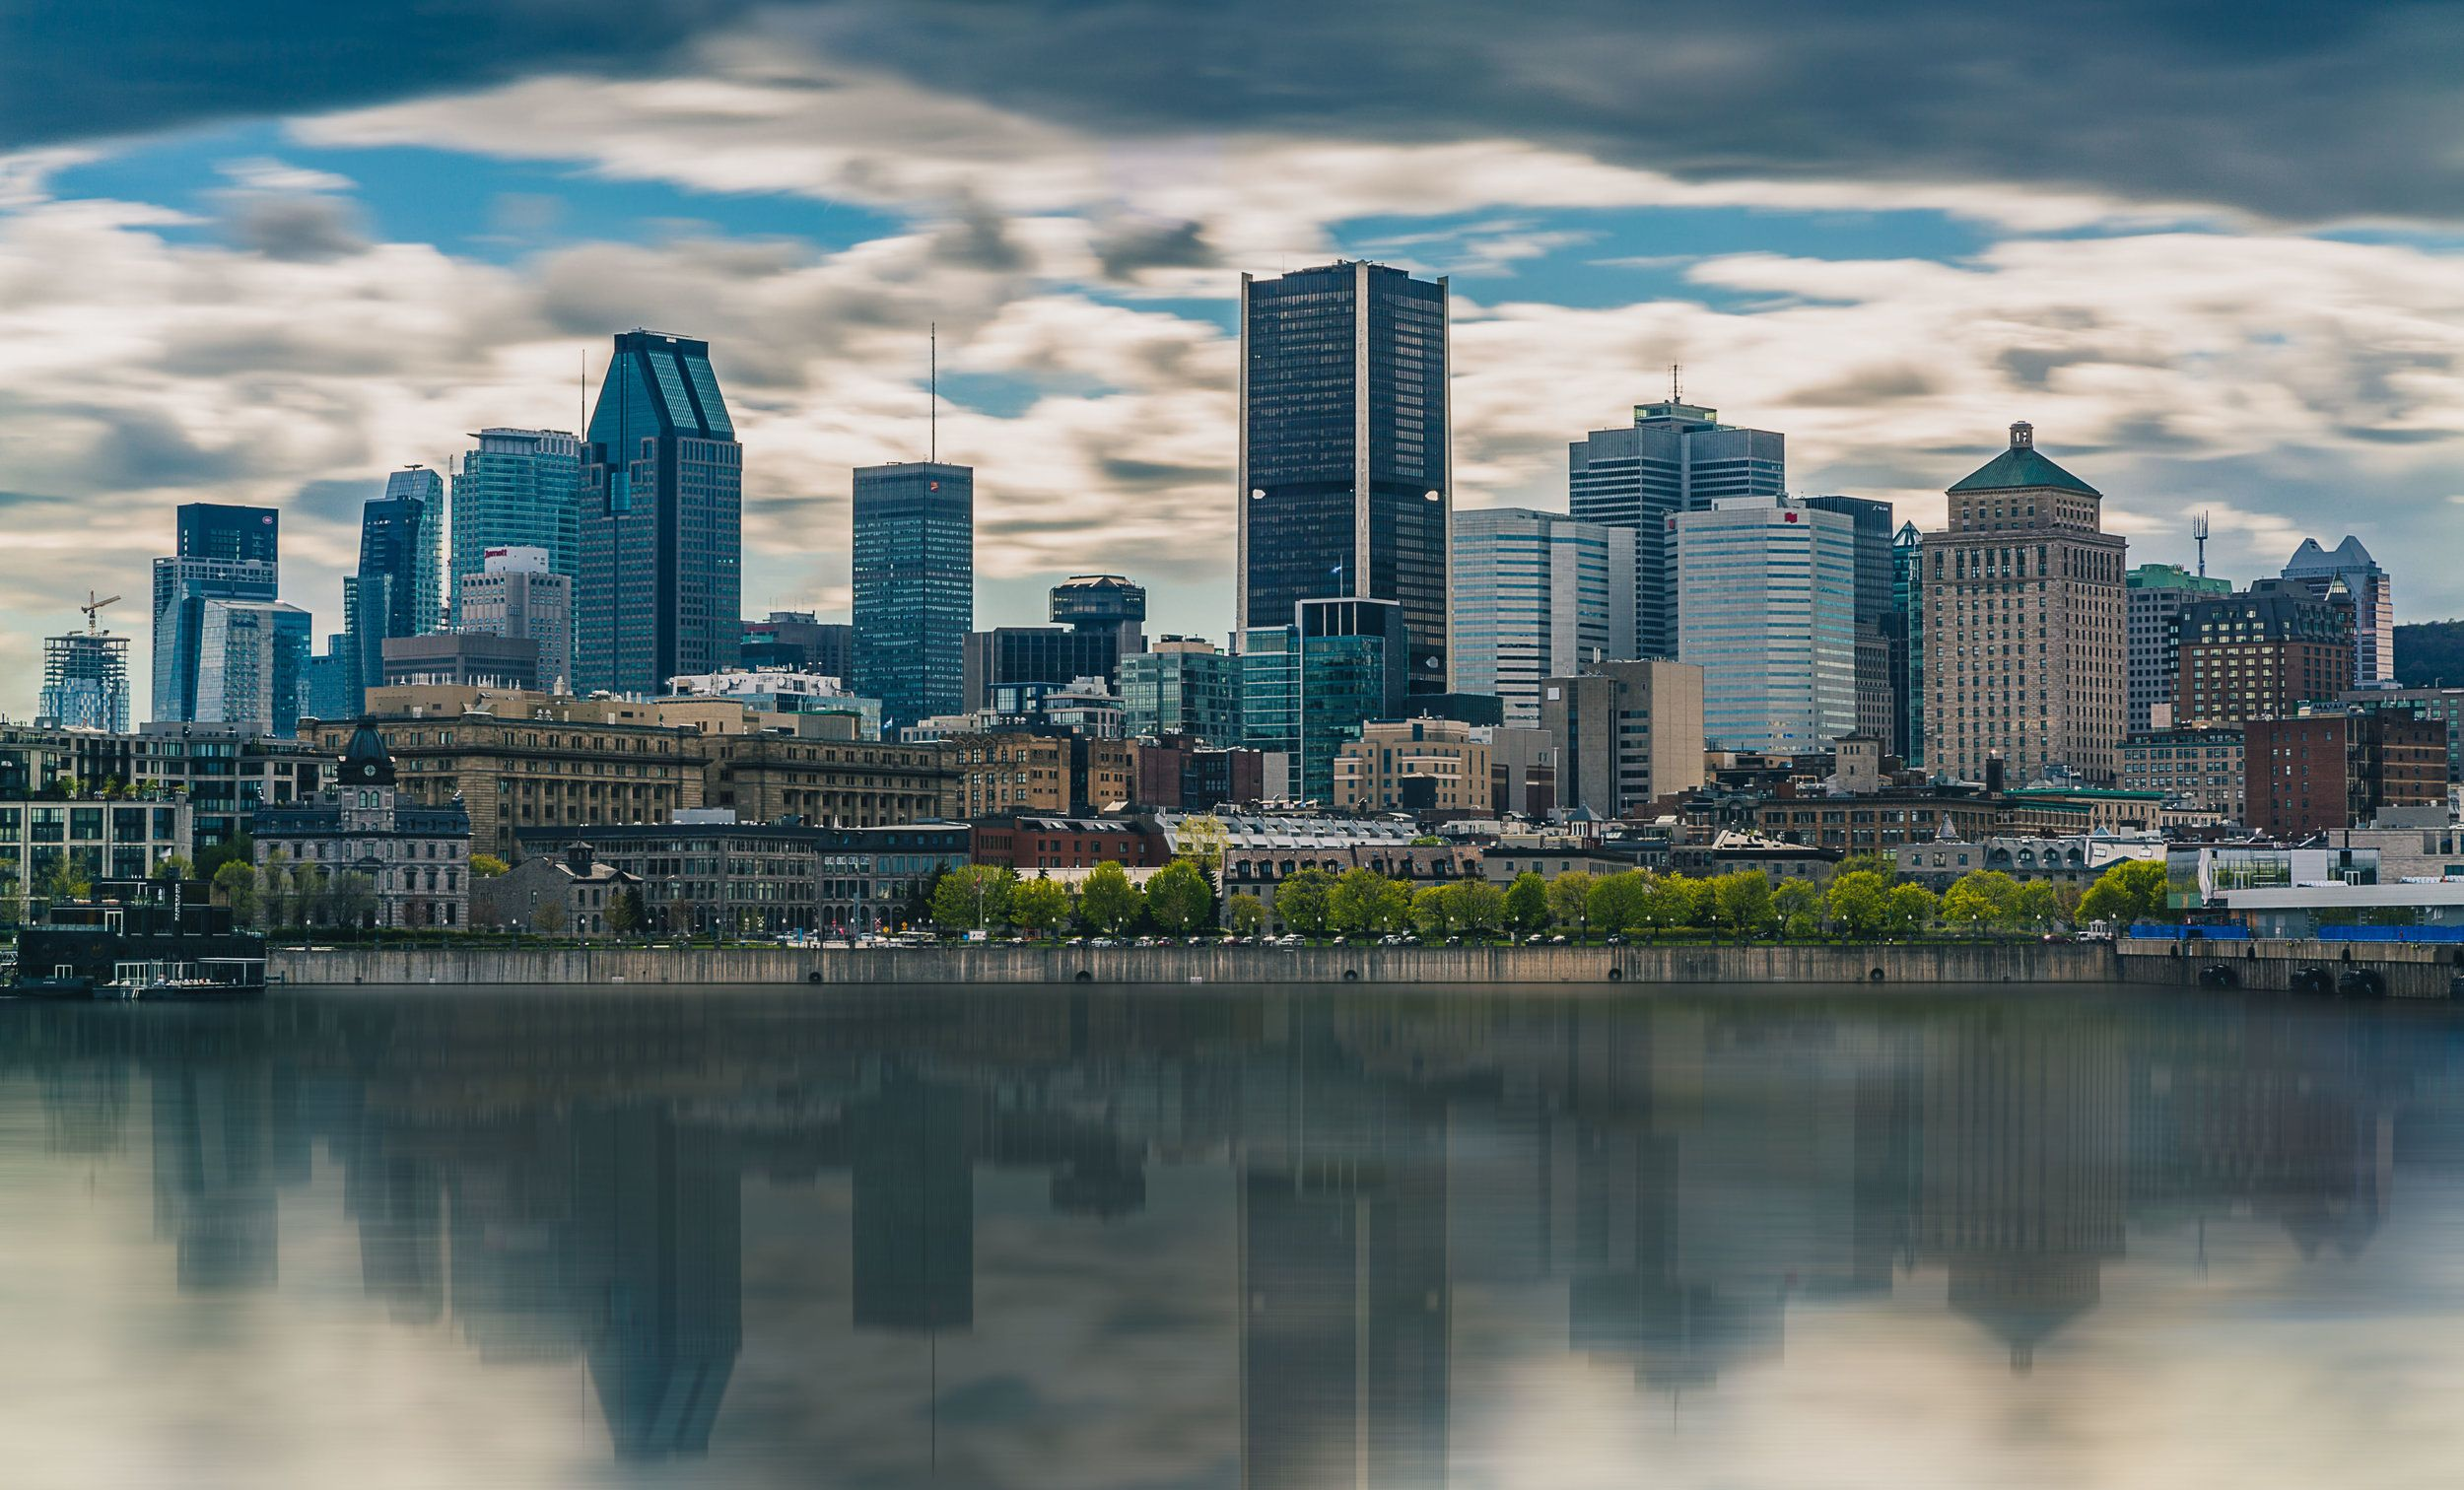 Summertime In Montreal Landscape Photography Landscape Landscape Photography New York Skyline